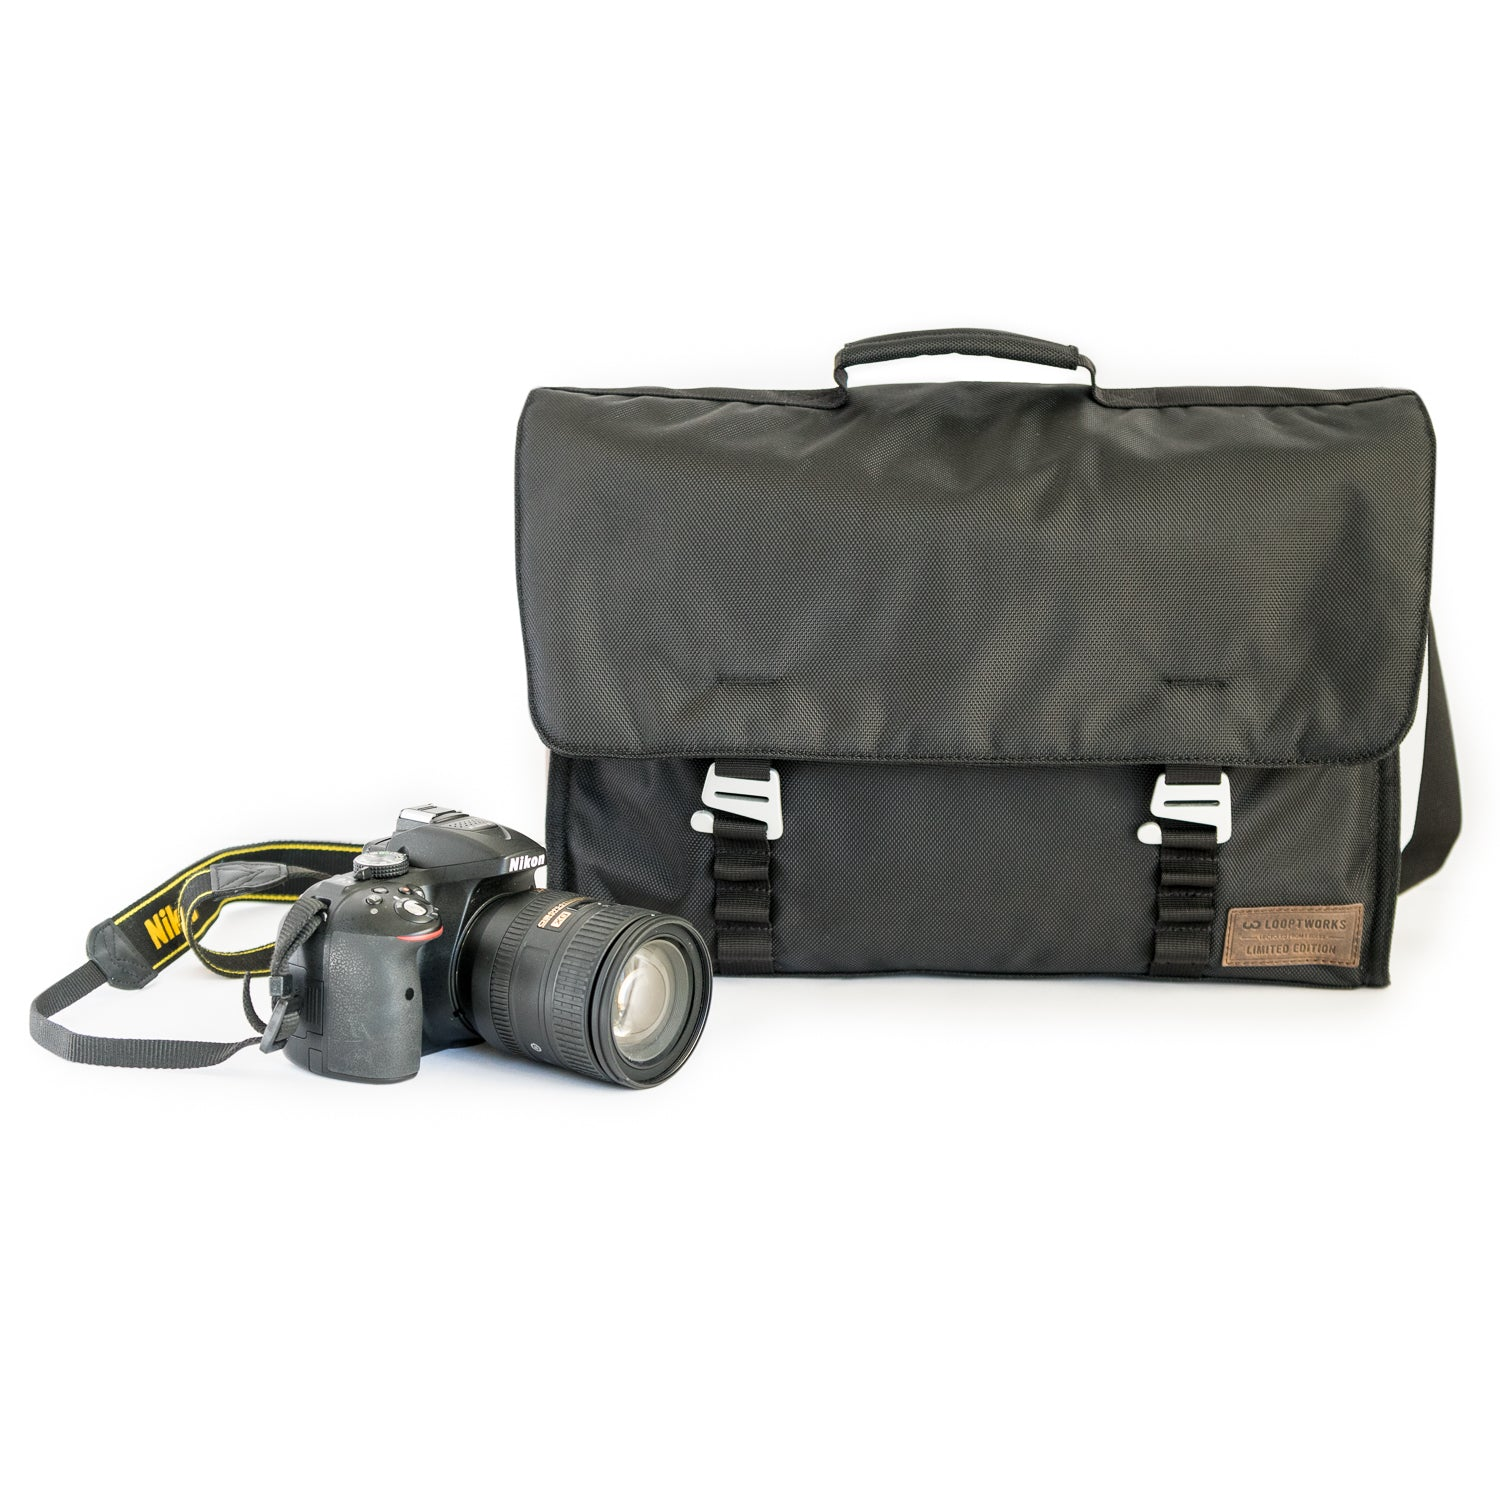 Northwest Camera Messenger Bag Messenger Bags - Looptworks